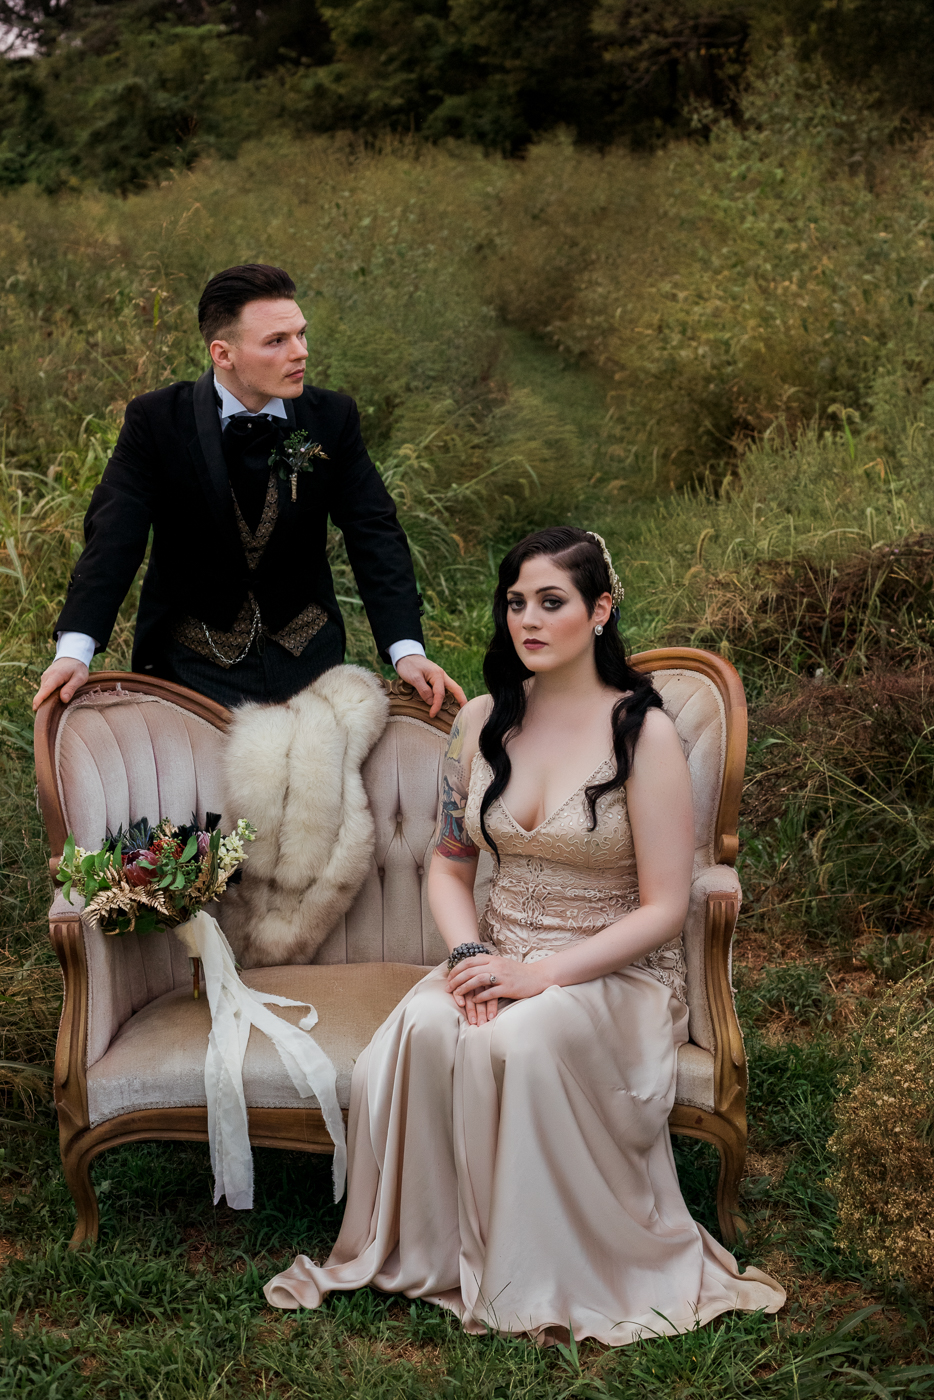 and-how-imaging-gothic-inspired-styled-shoot-gothic-wedding-1920s-theme-wedding-1920s-inspired-styled-shoot-halloween-styled-shoot-gothic-inspired-wedding-54